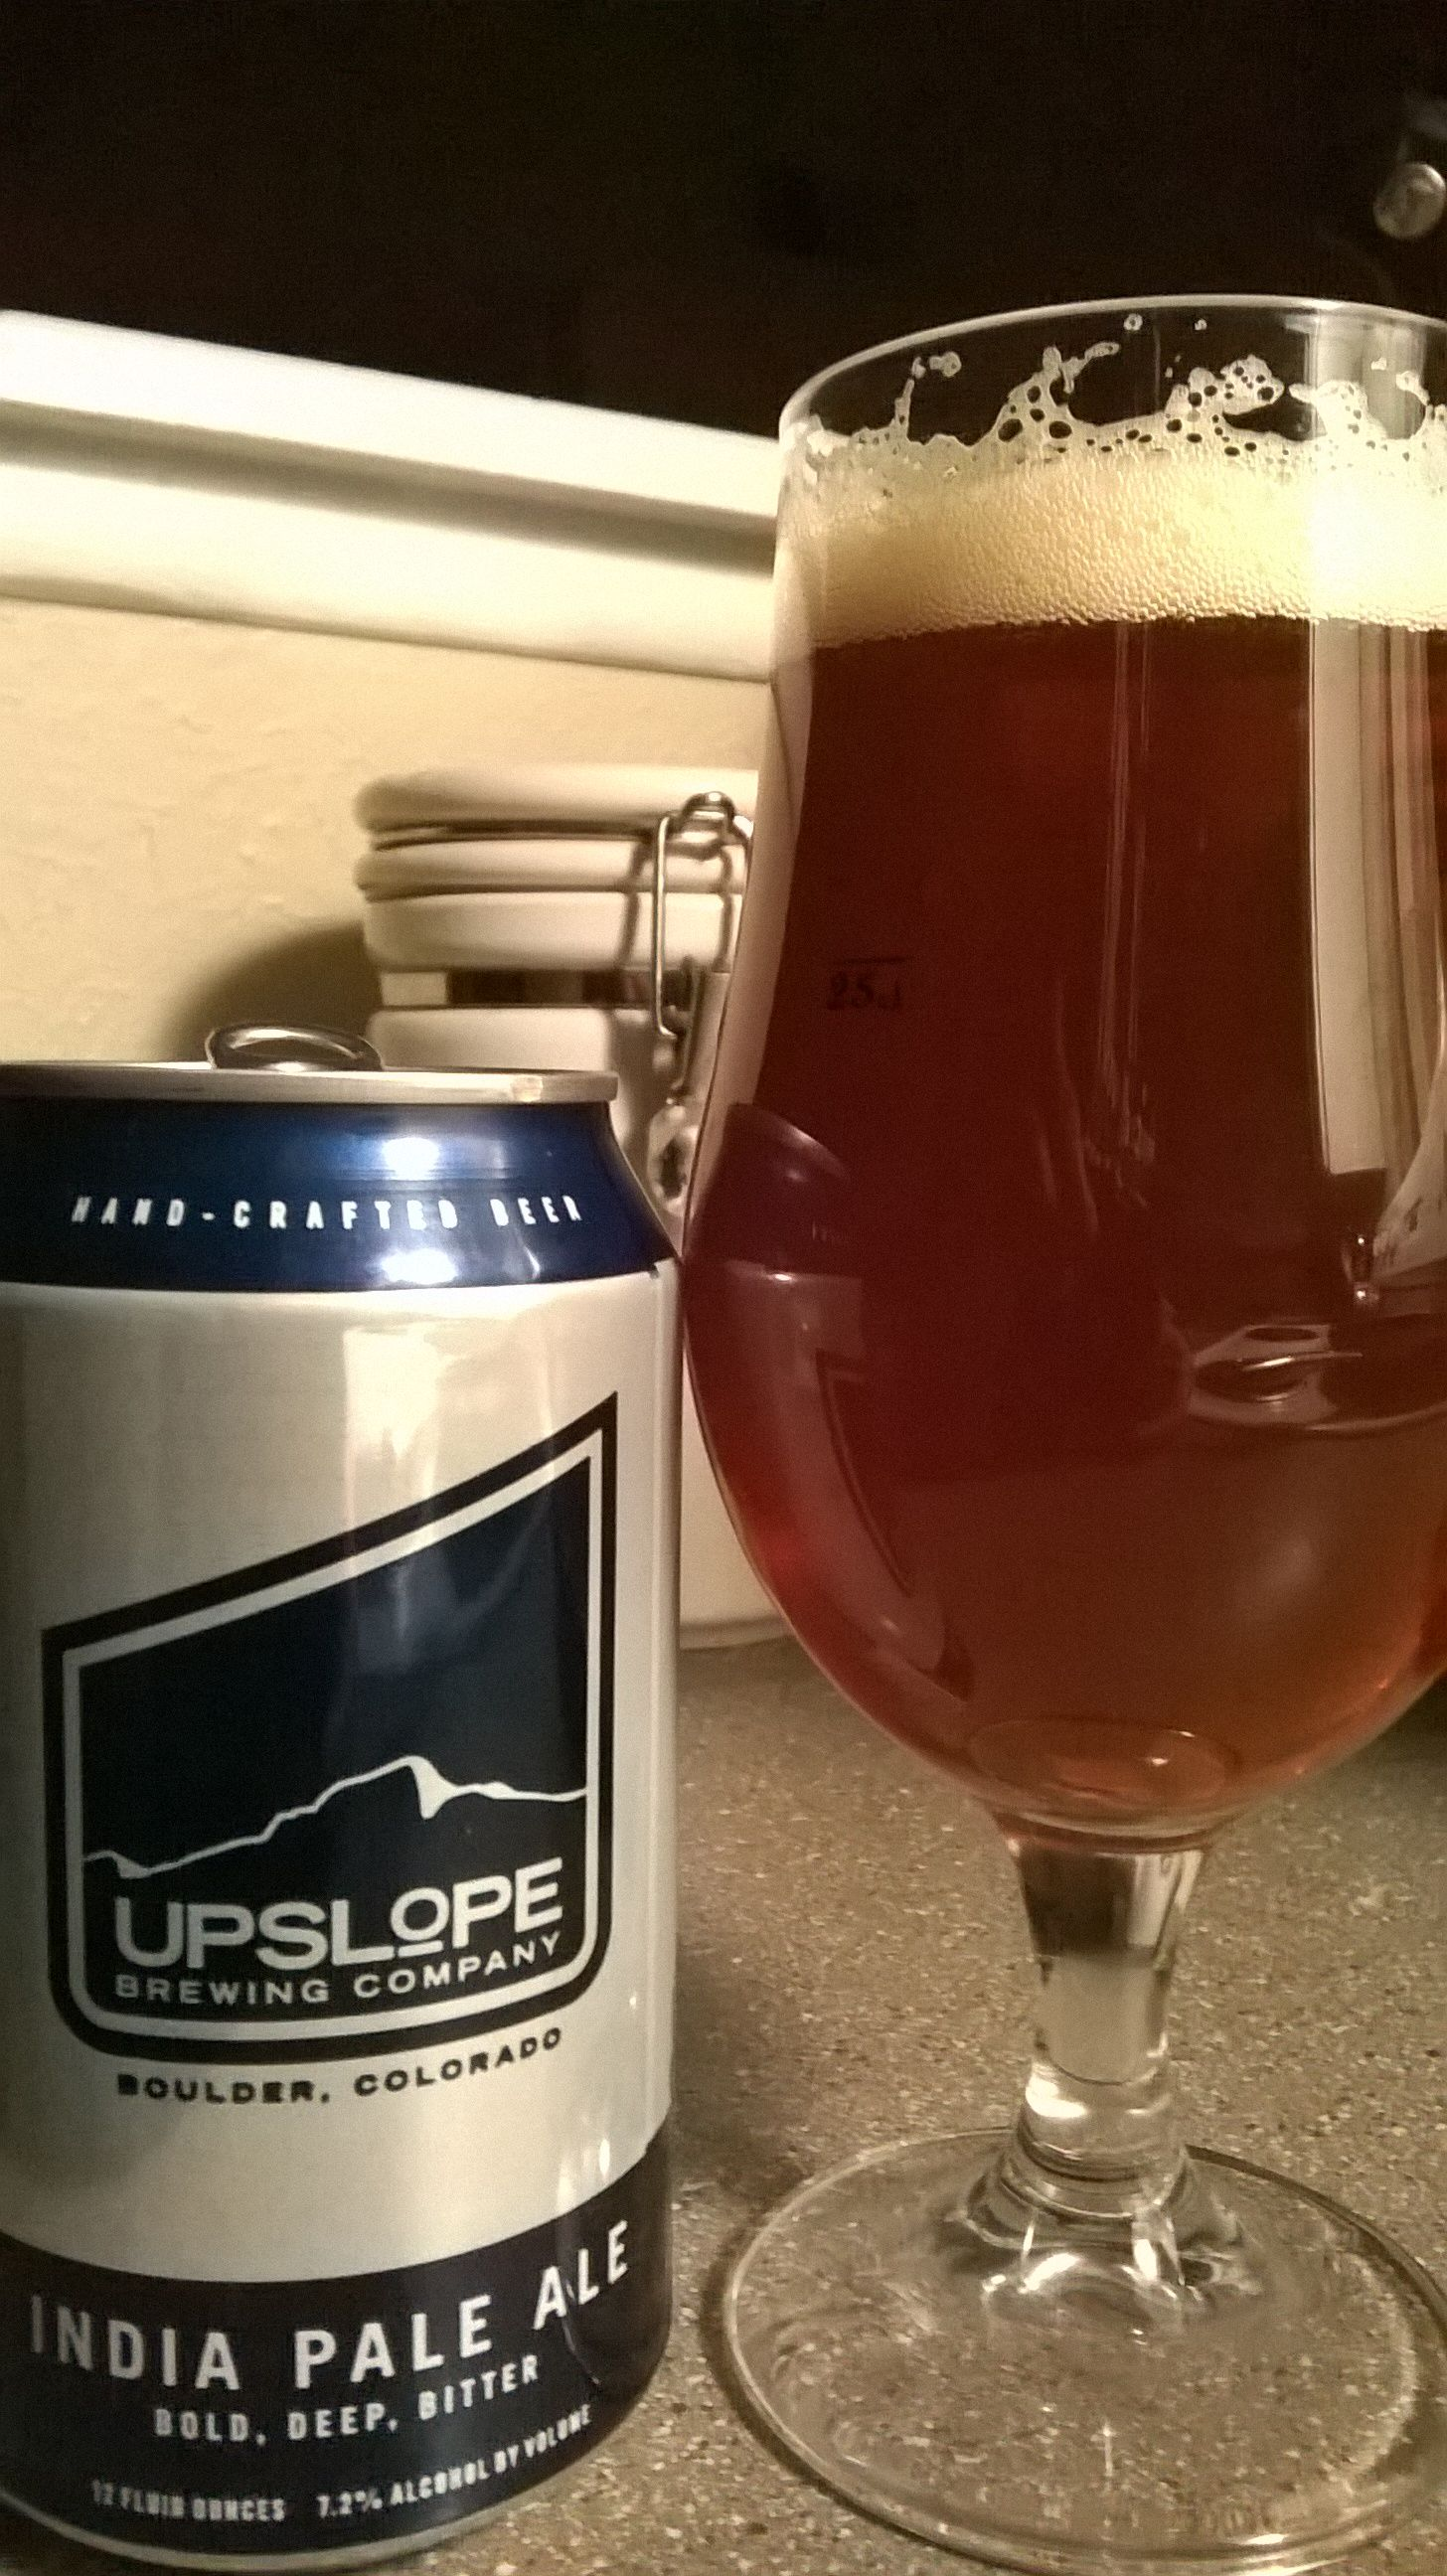 Upslope Brewing Ipa Brewing India Pale Ale Craft Beer